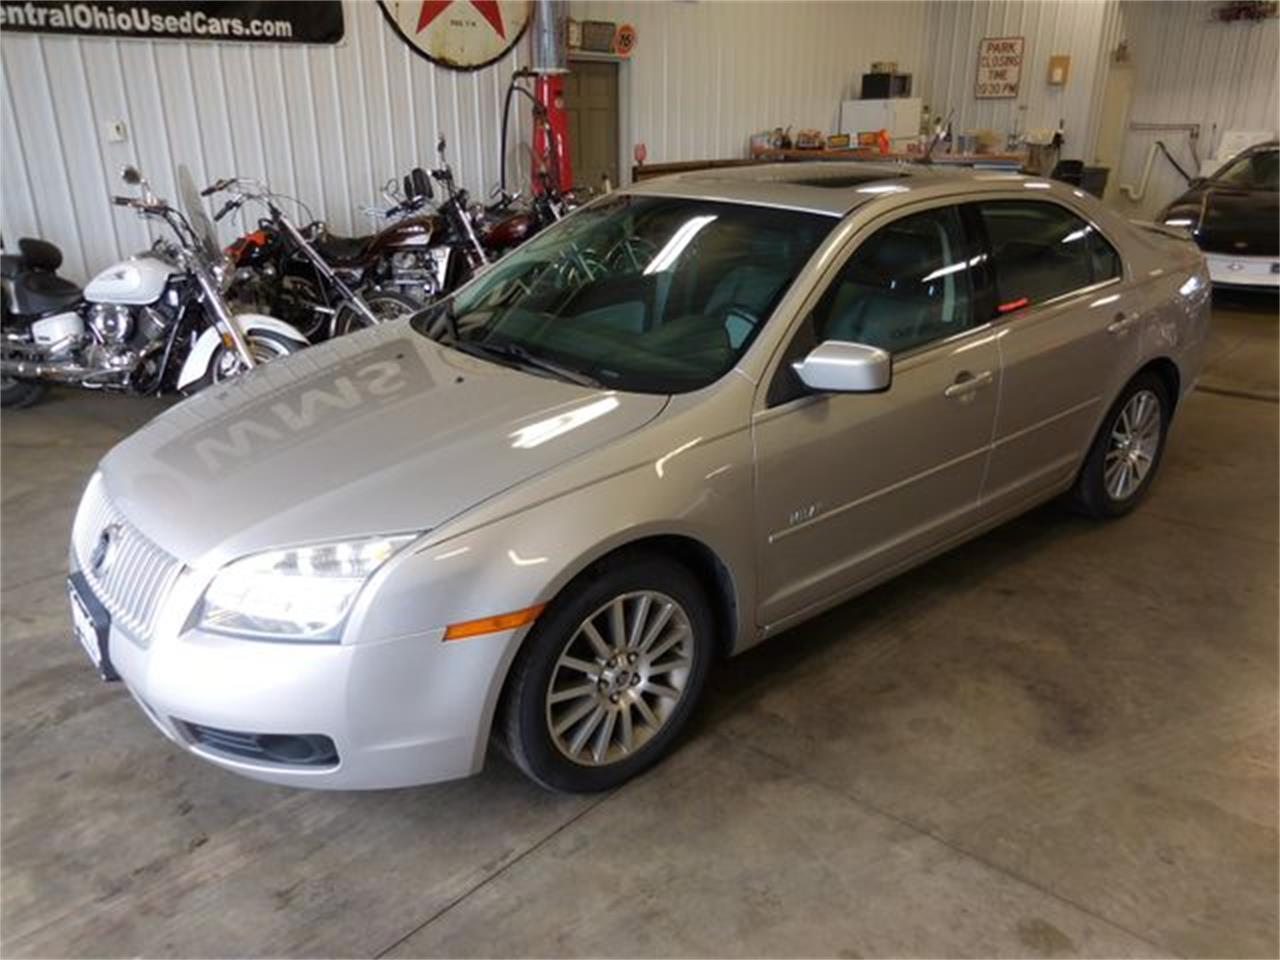 Large Picture of '07 Milan located in Upper Sandusky Ohio - $5,900.00 Offered by Wyandot Motor Sales - MG1T